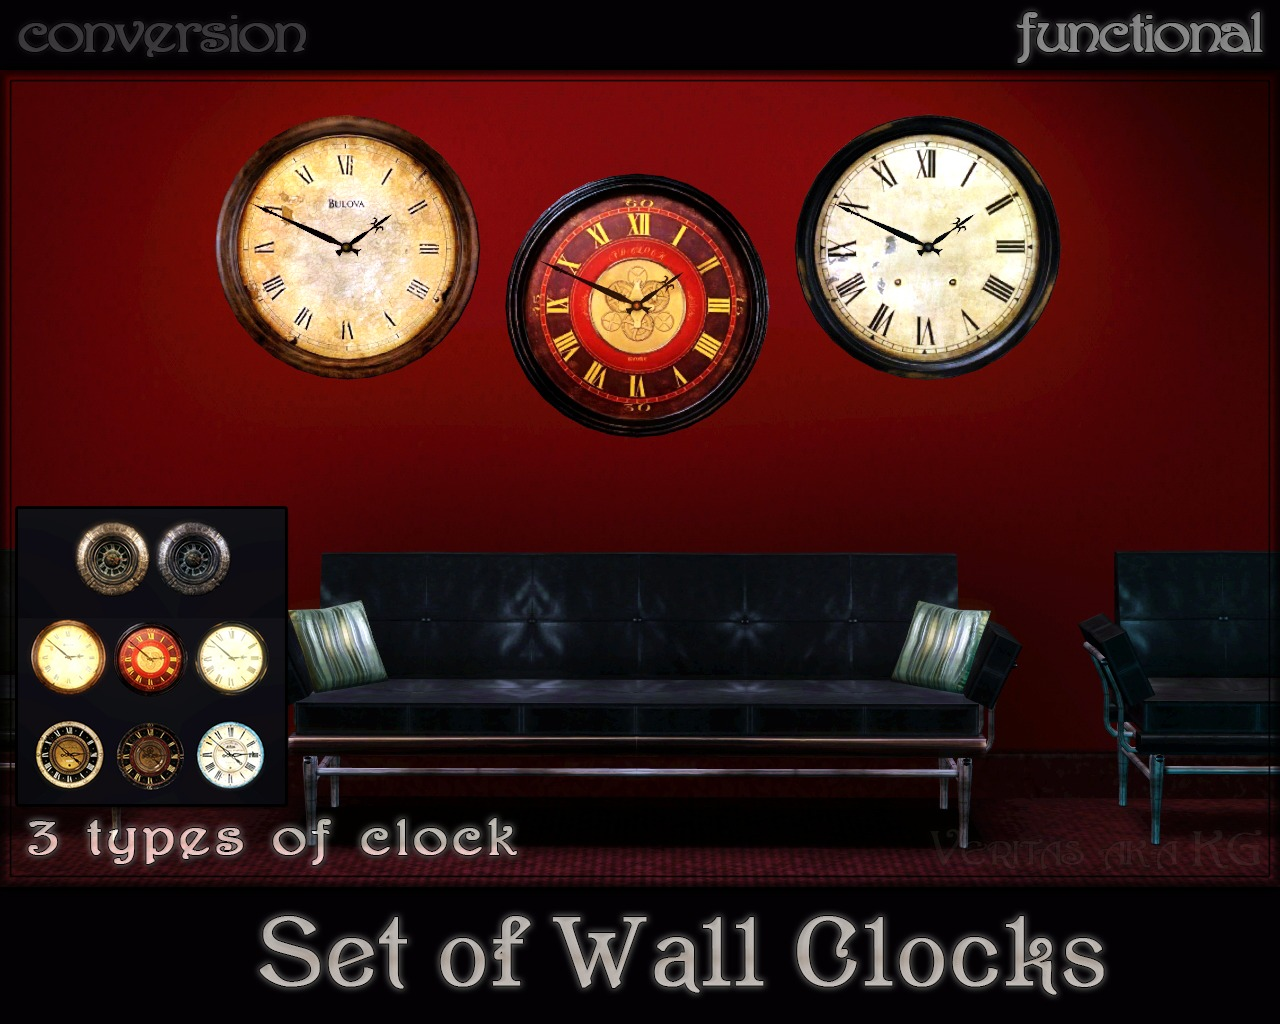 Adele Set of Wall Clocks by Veritas